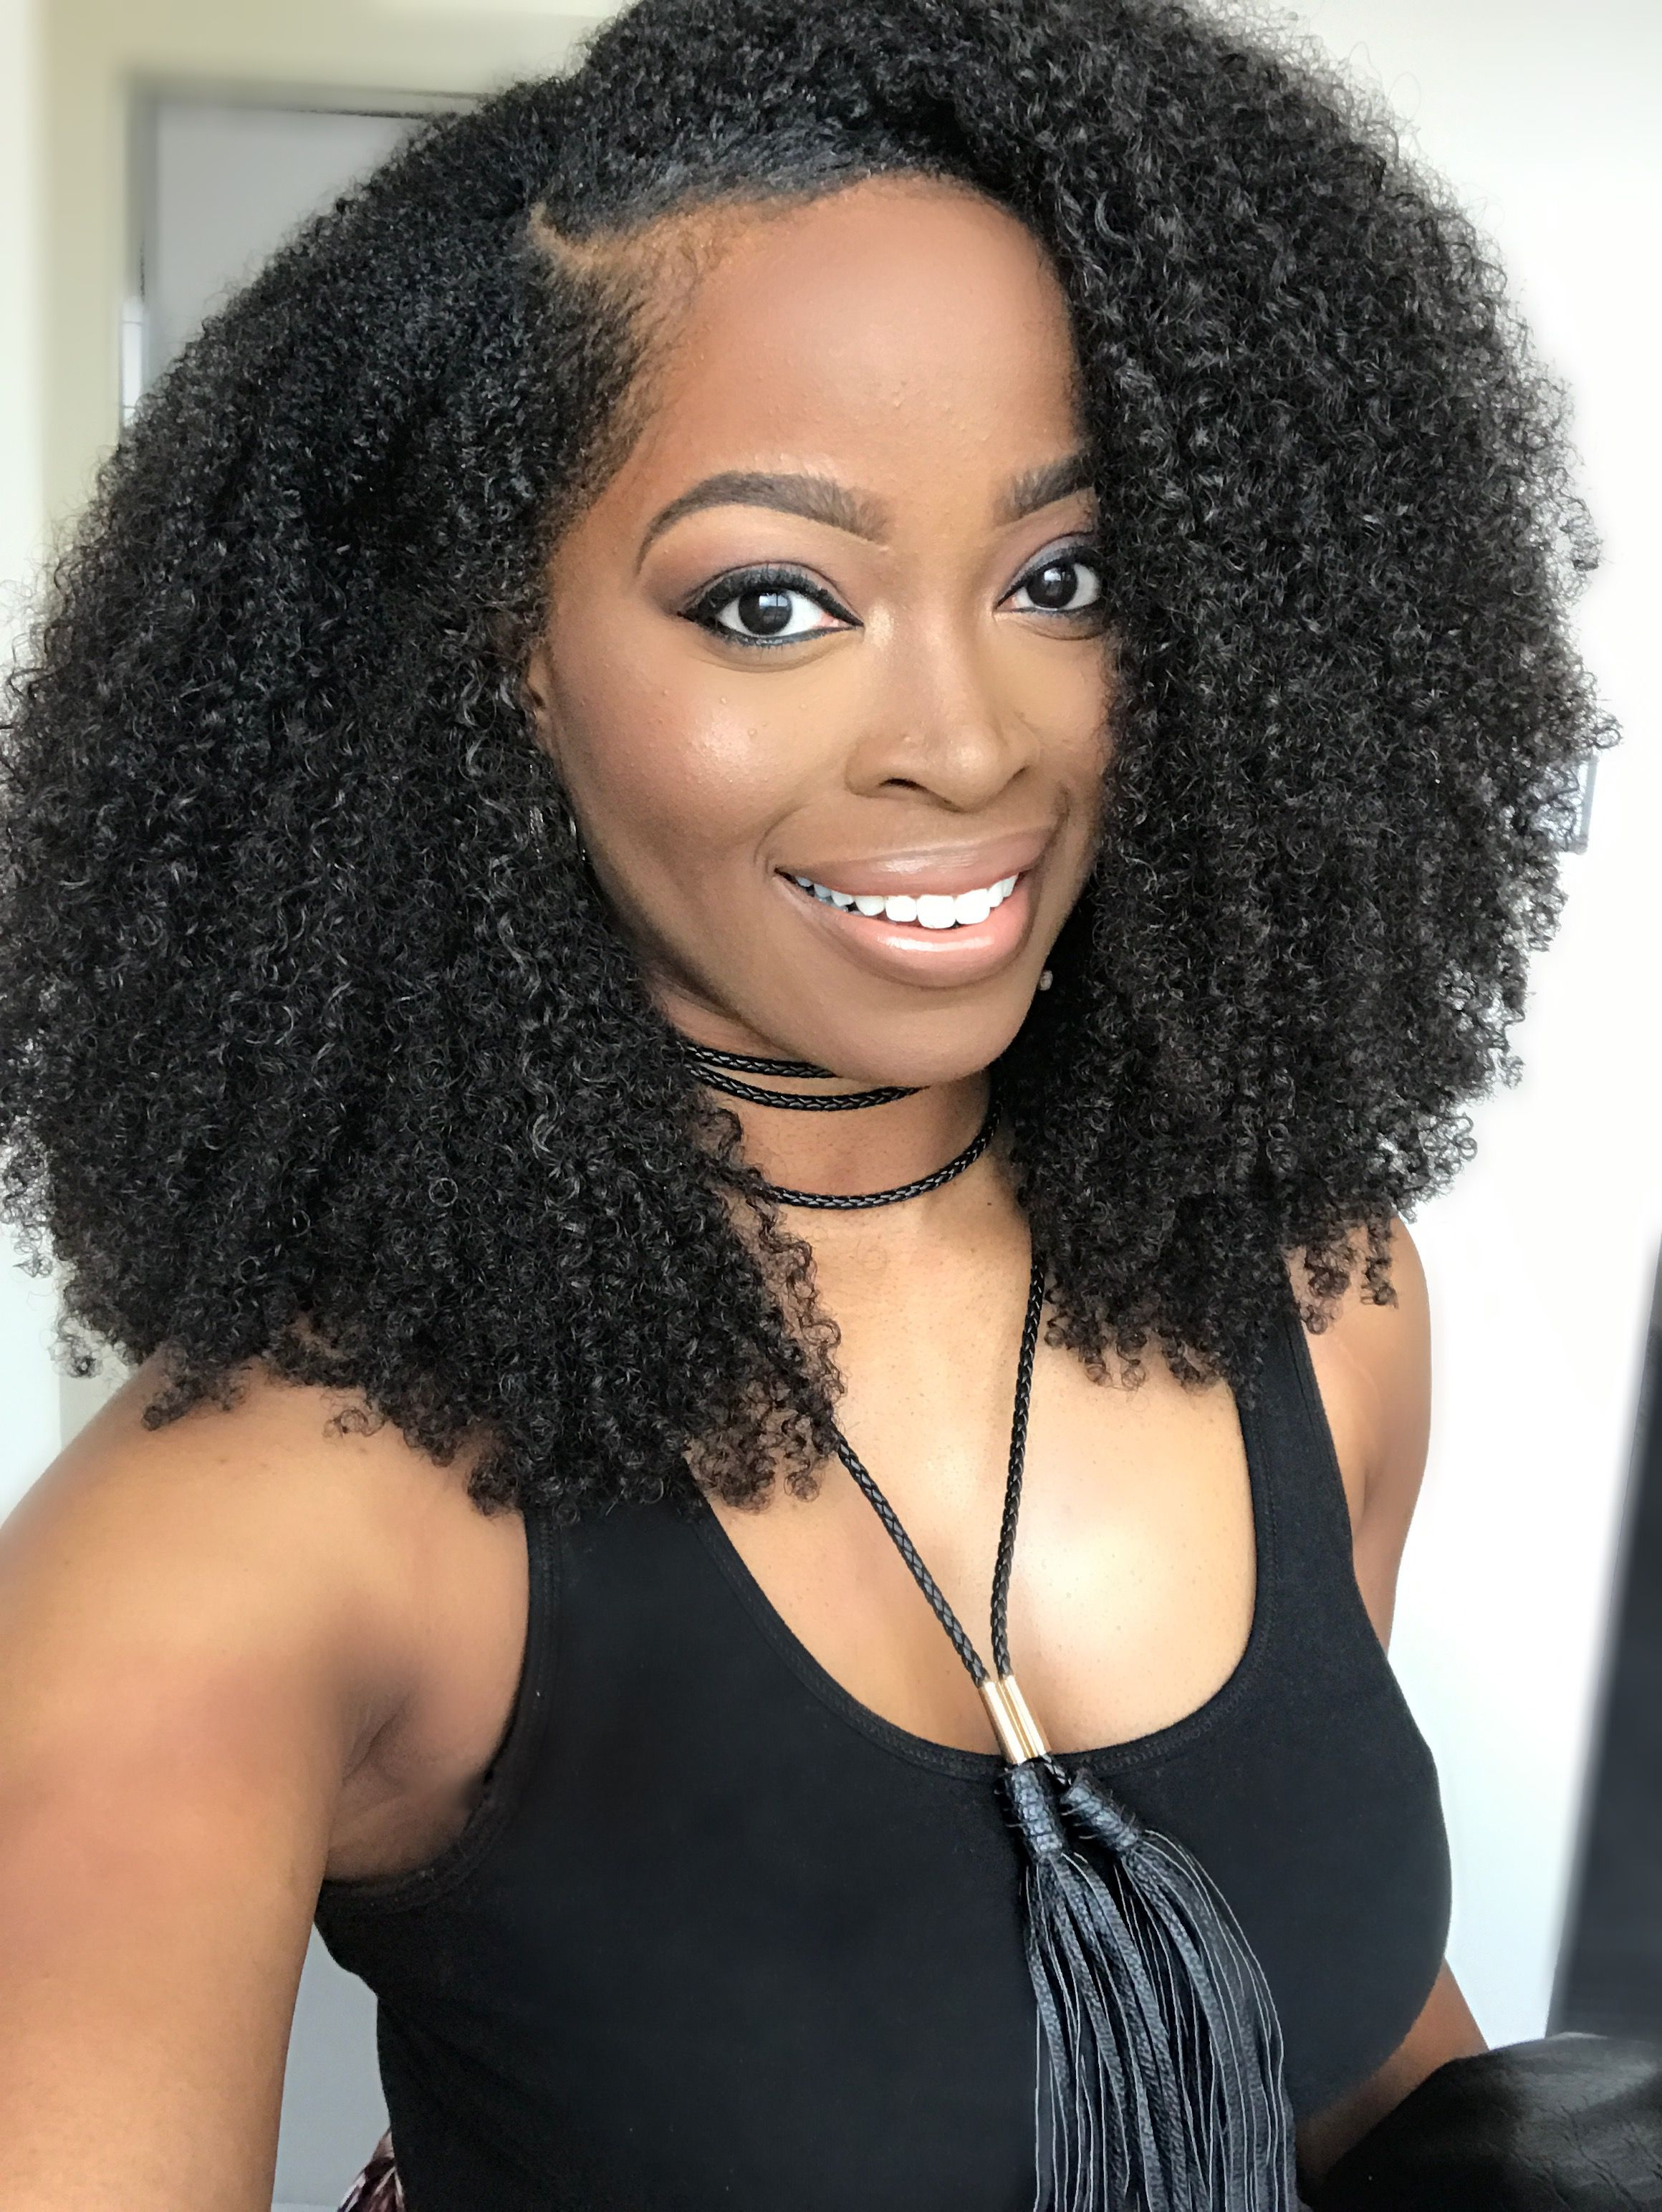 Msnaturallymary rocking her favoritetural hair extensions msnaturallymary rocking her favoritetural hair extensions hergivenhair click picture to learn more pmusecretfo Image collections